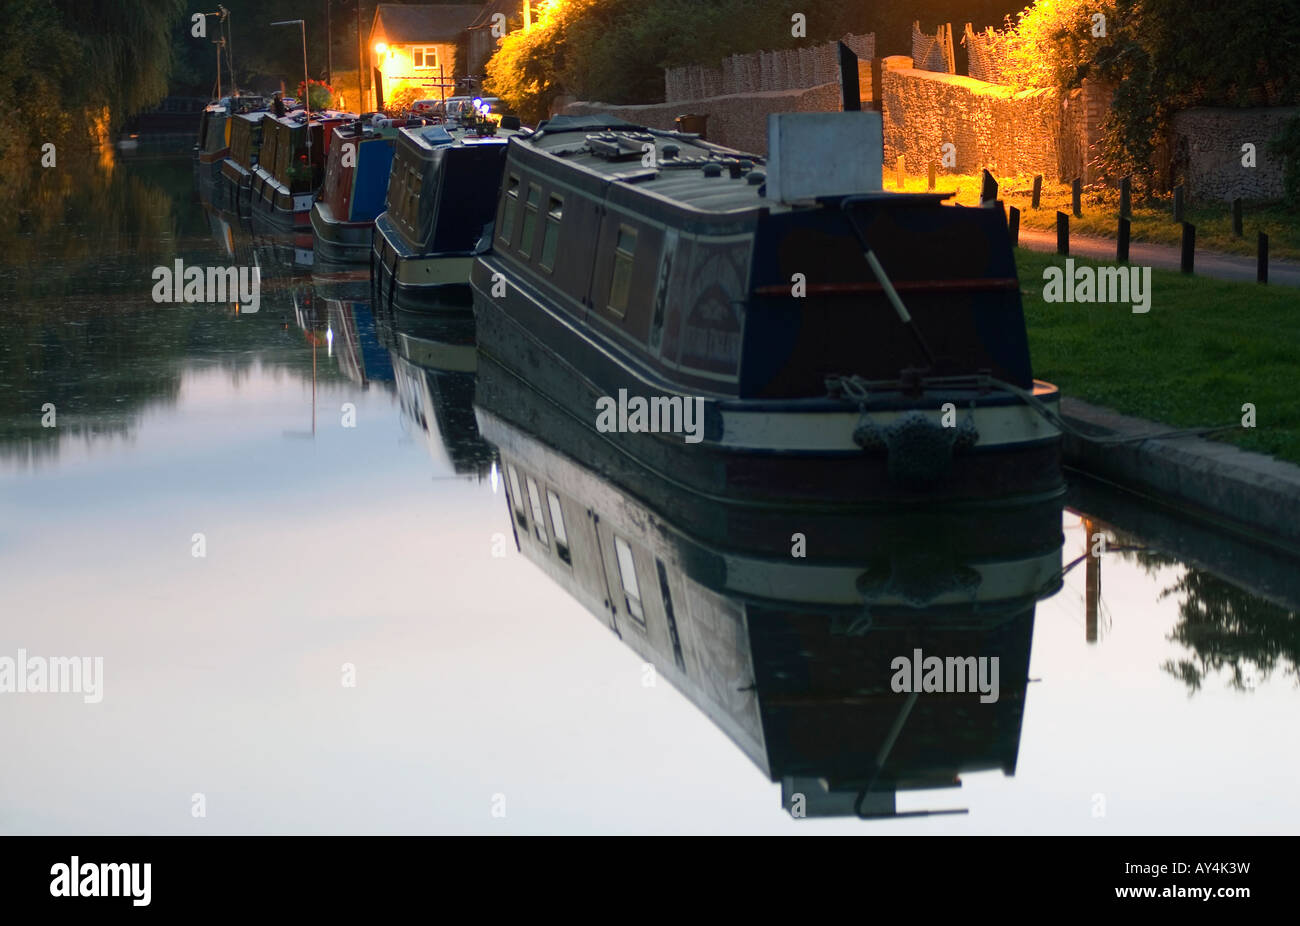 Doug Blane Narrowboats moored at Thrup on the Oxford canal - Stock Image